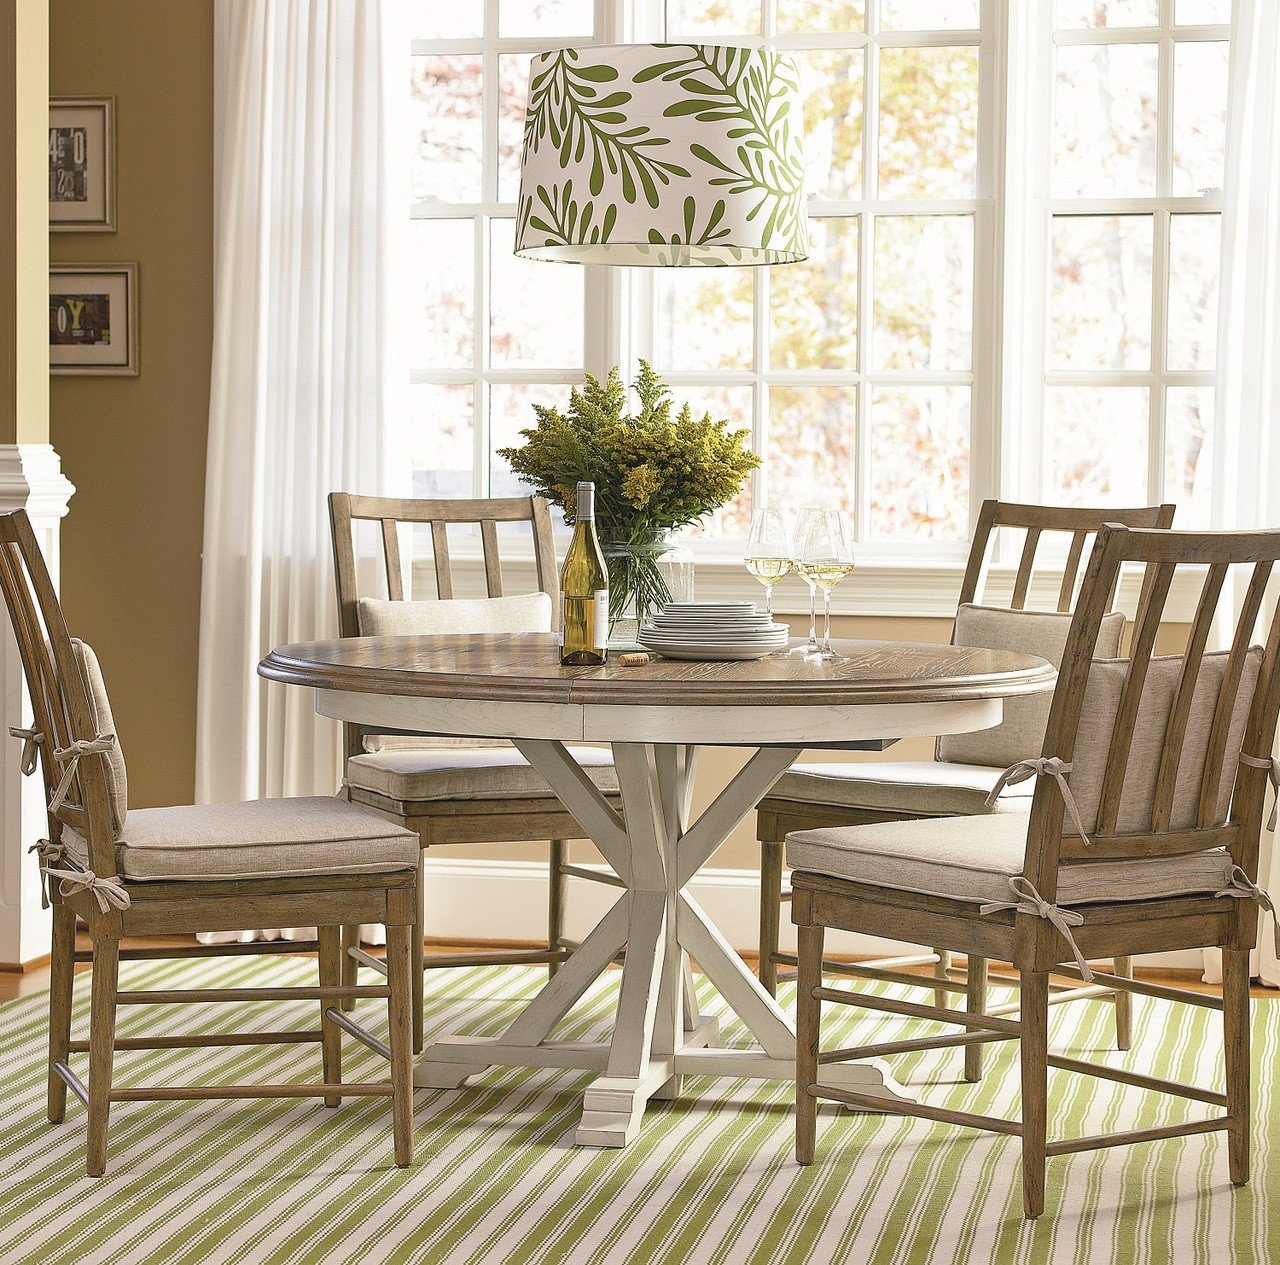 Coastal Beach White Oak Round Expandable Dining Table 54